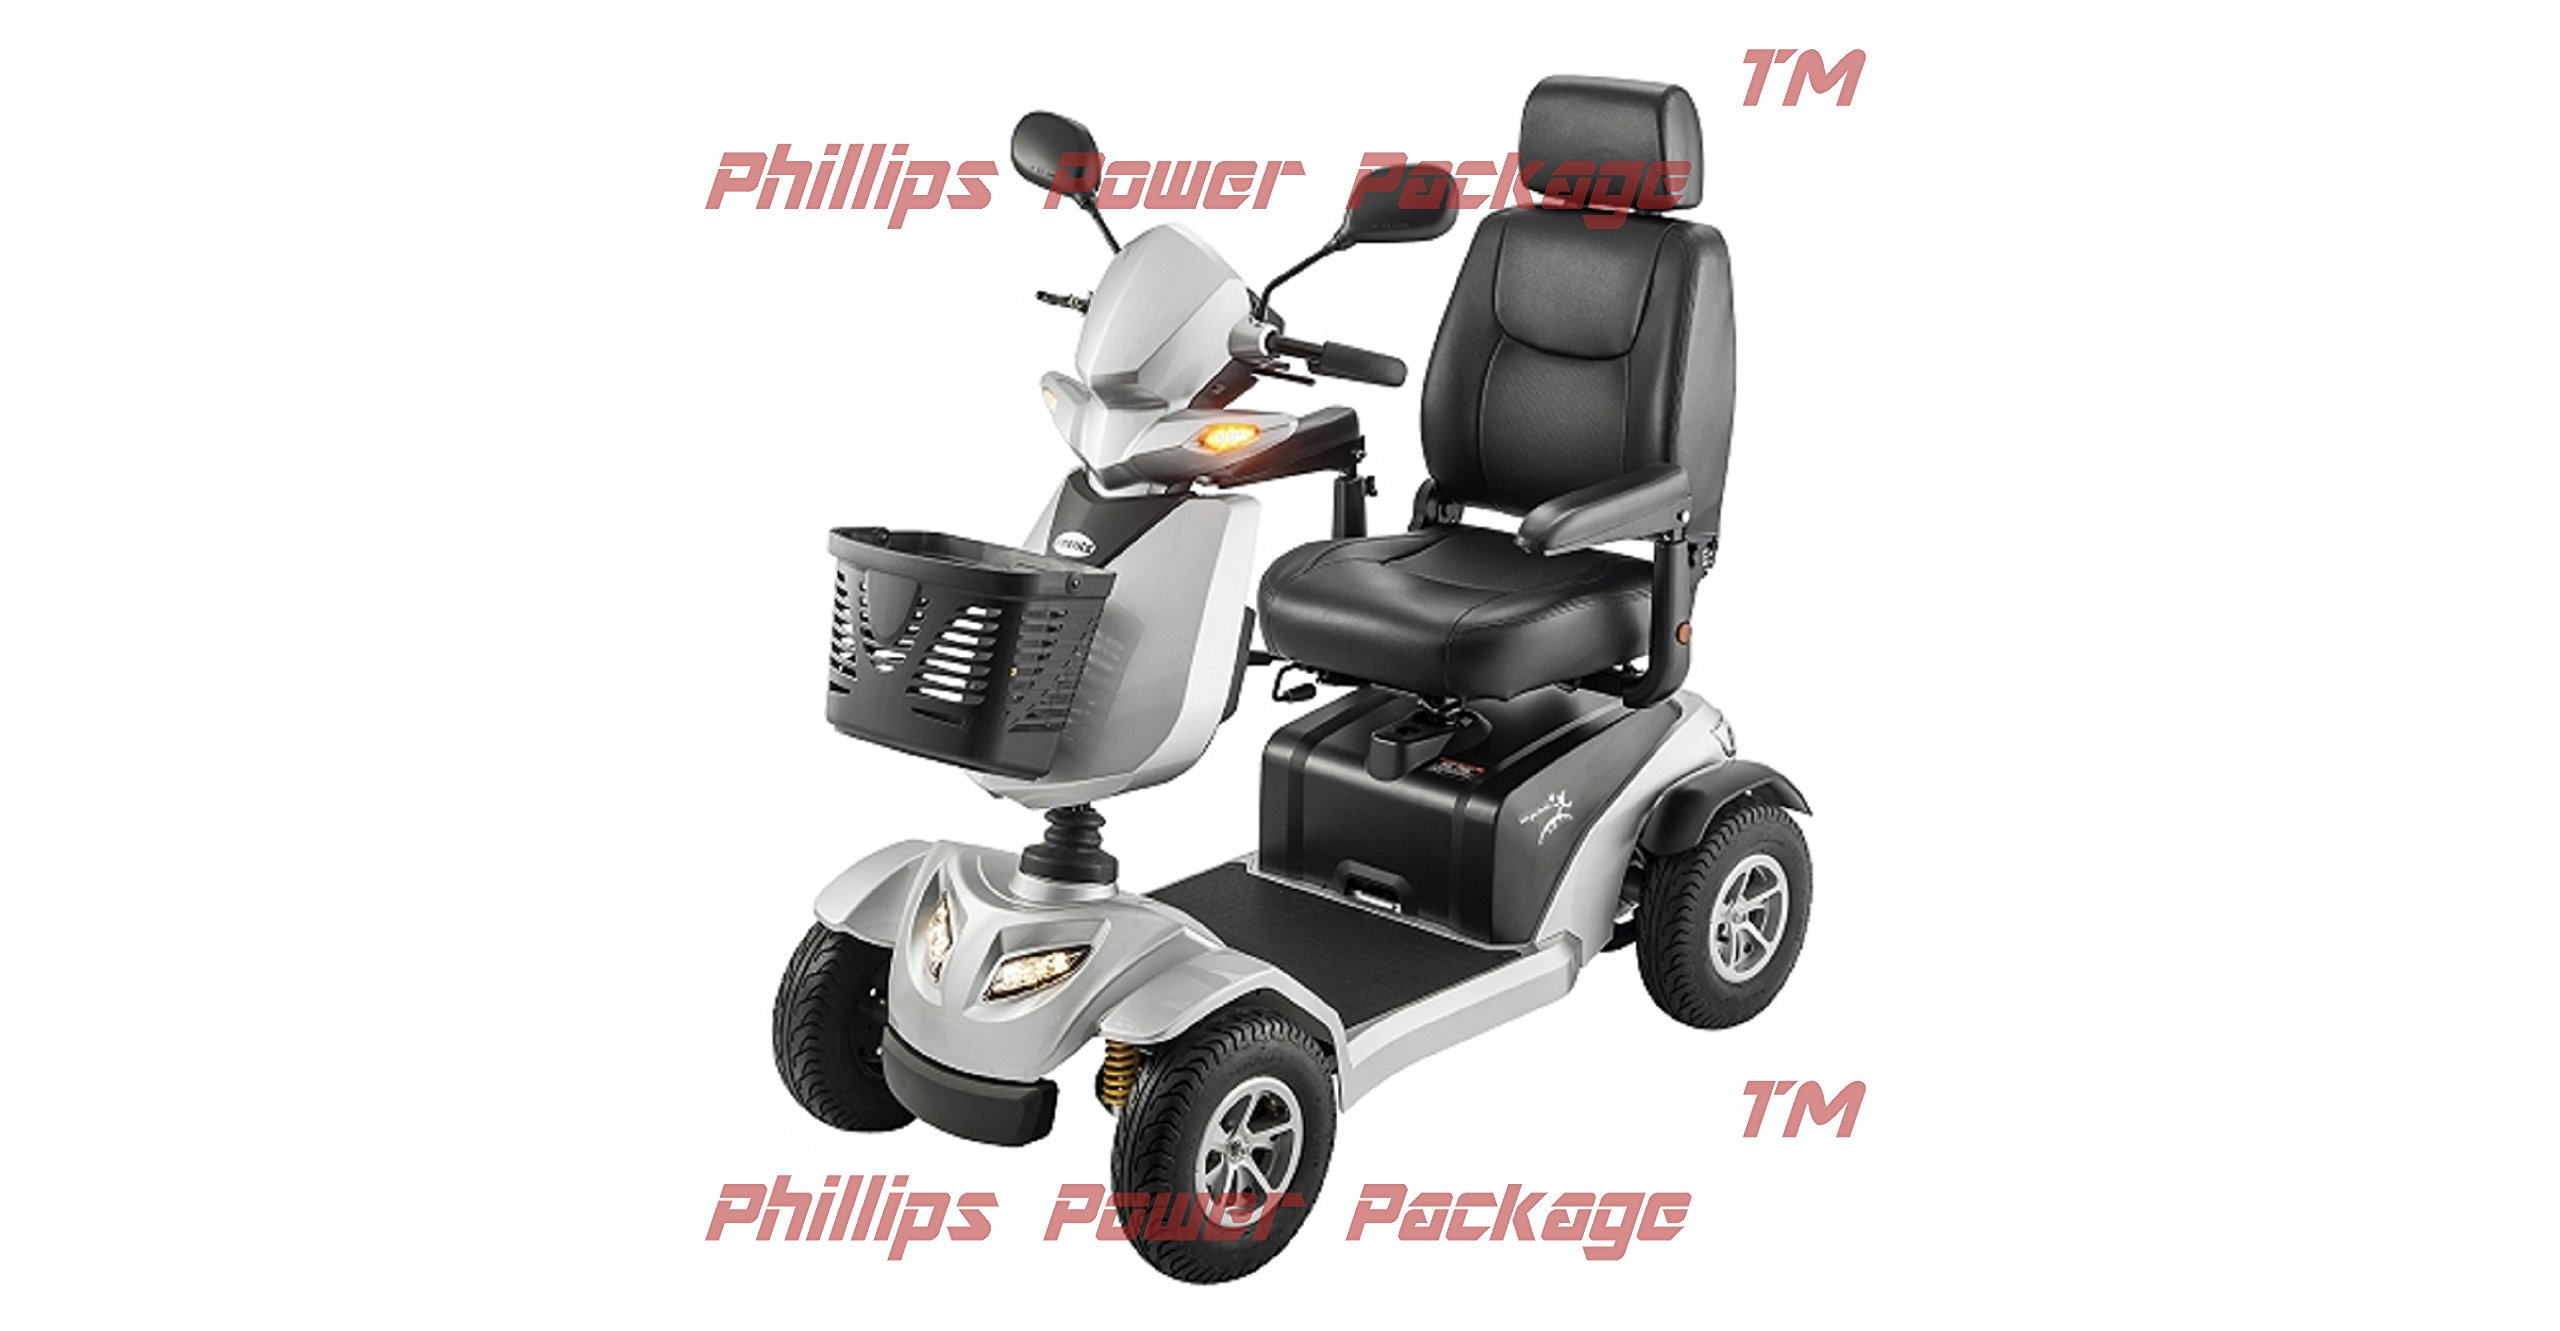 Merits - Silverado - 4-Wheel Full Suspension Electric Scooter - 18''W x 17''D - Silver - PHILLIPS POWER PACKAGE TM - TO $500 VALUE